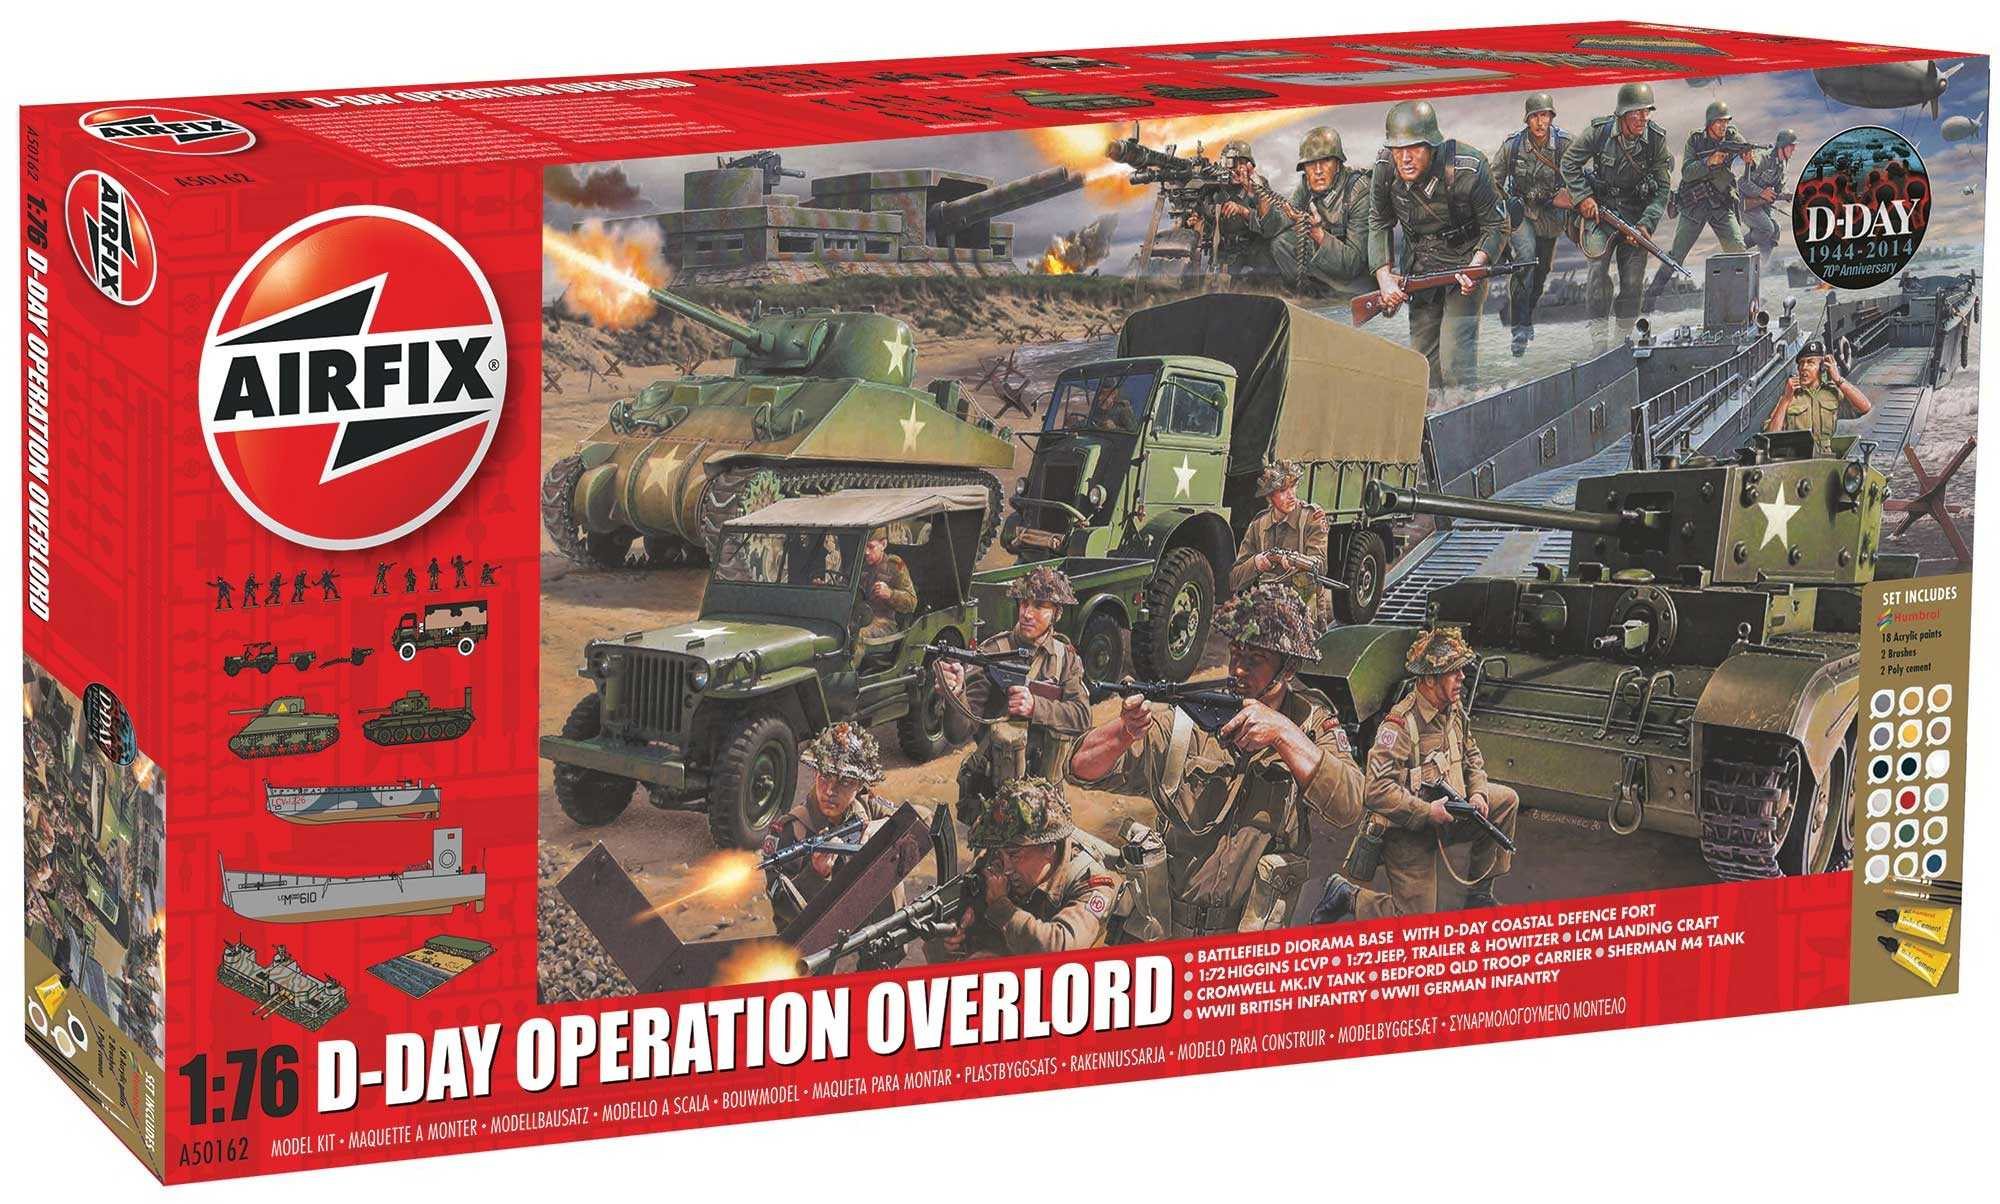 1:76 D-Day 75th Anniversary Operation Overlord